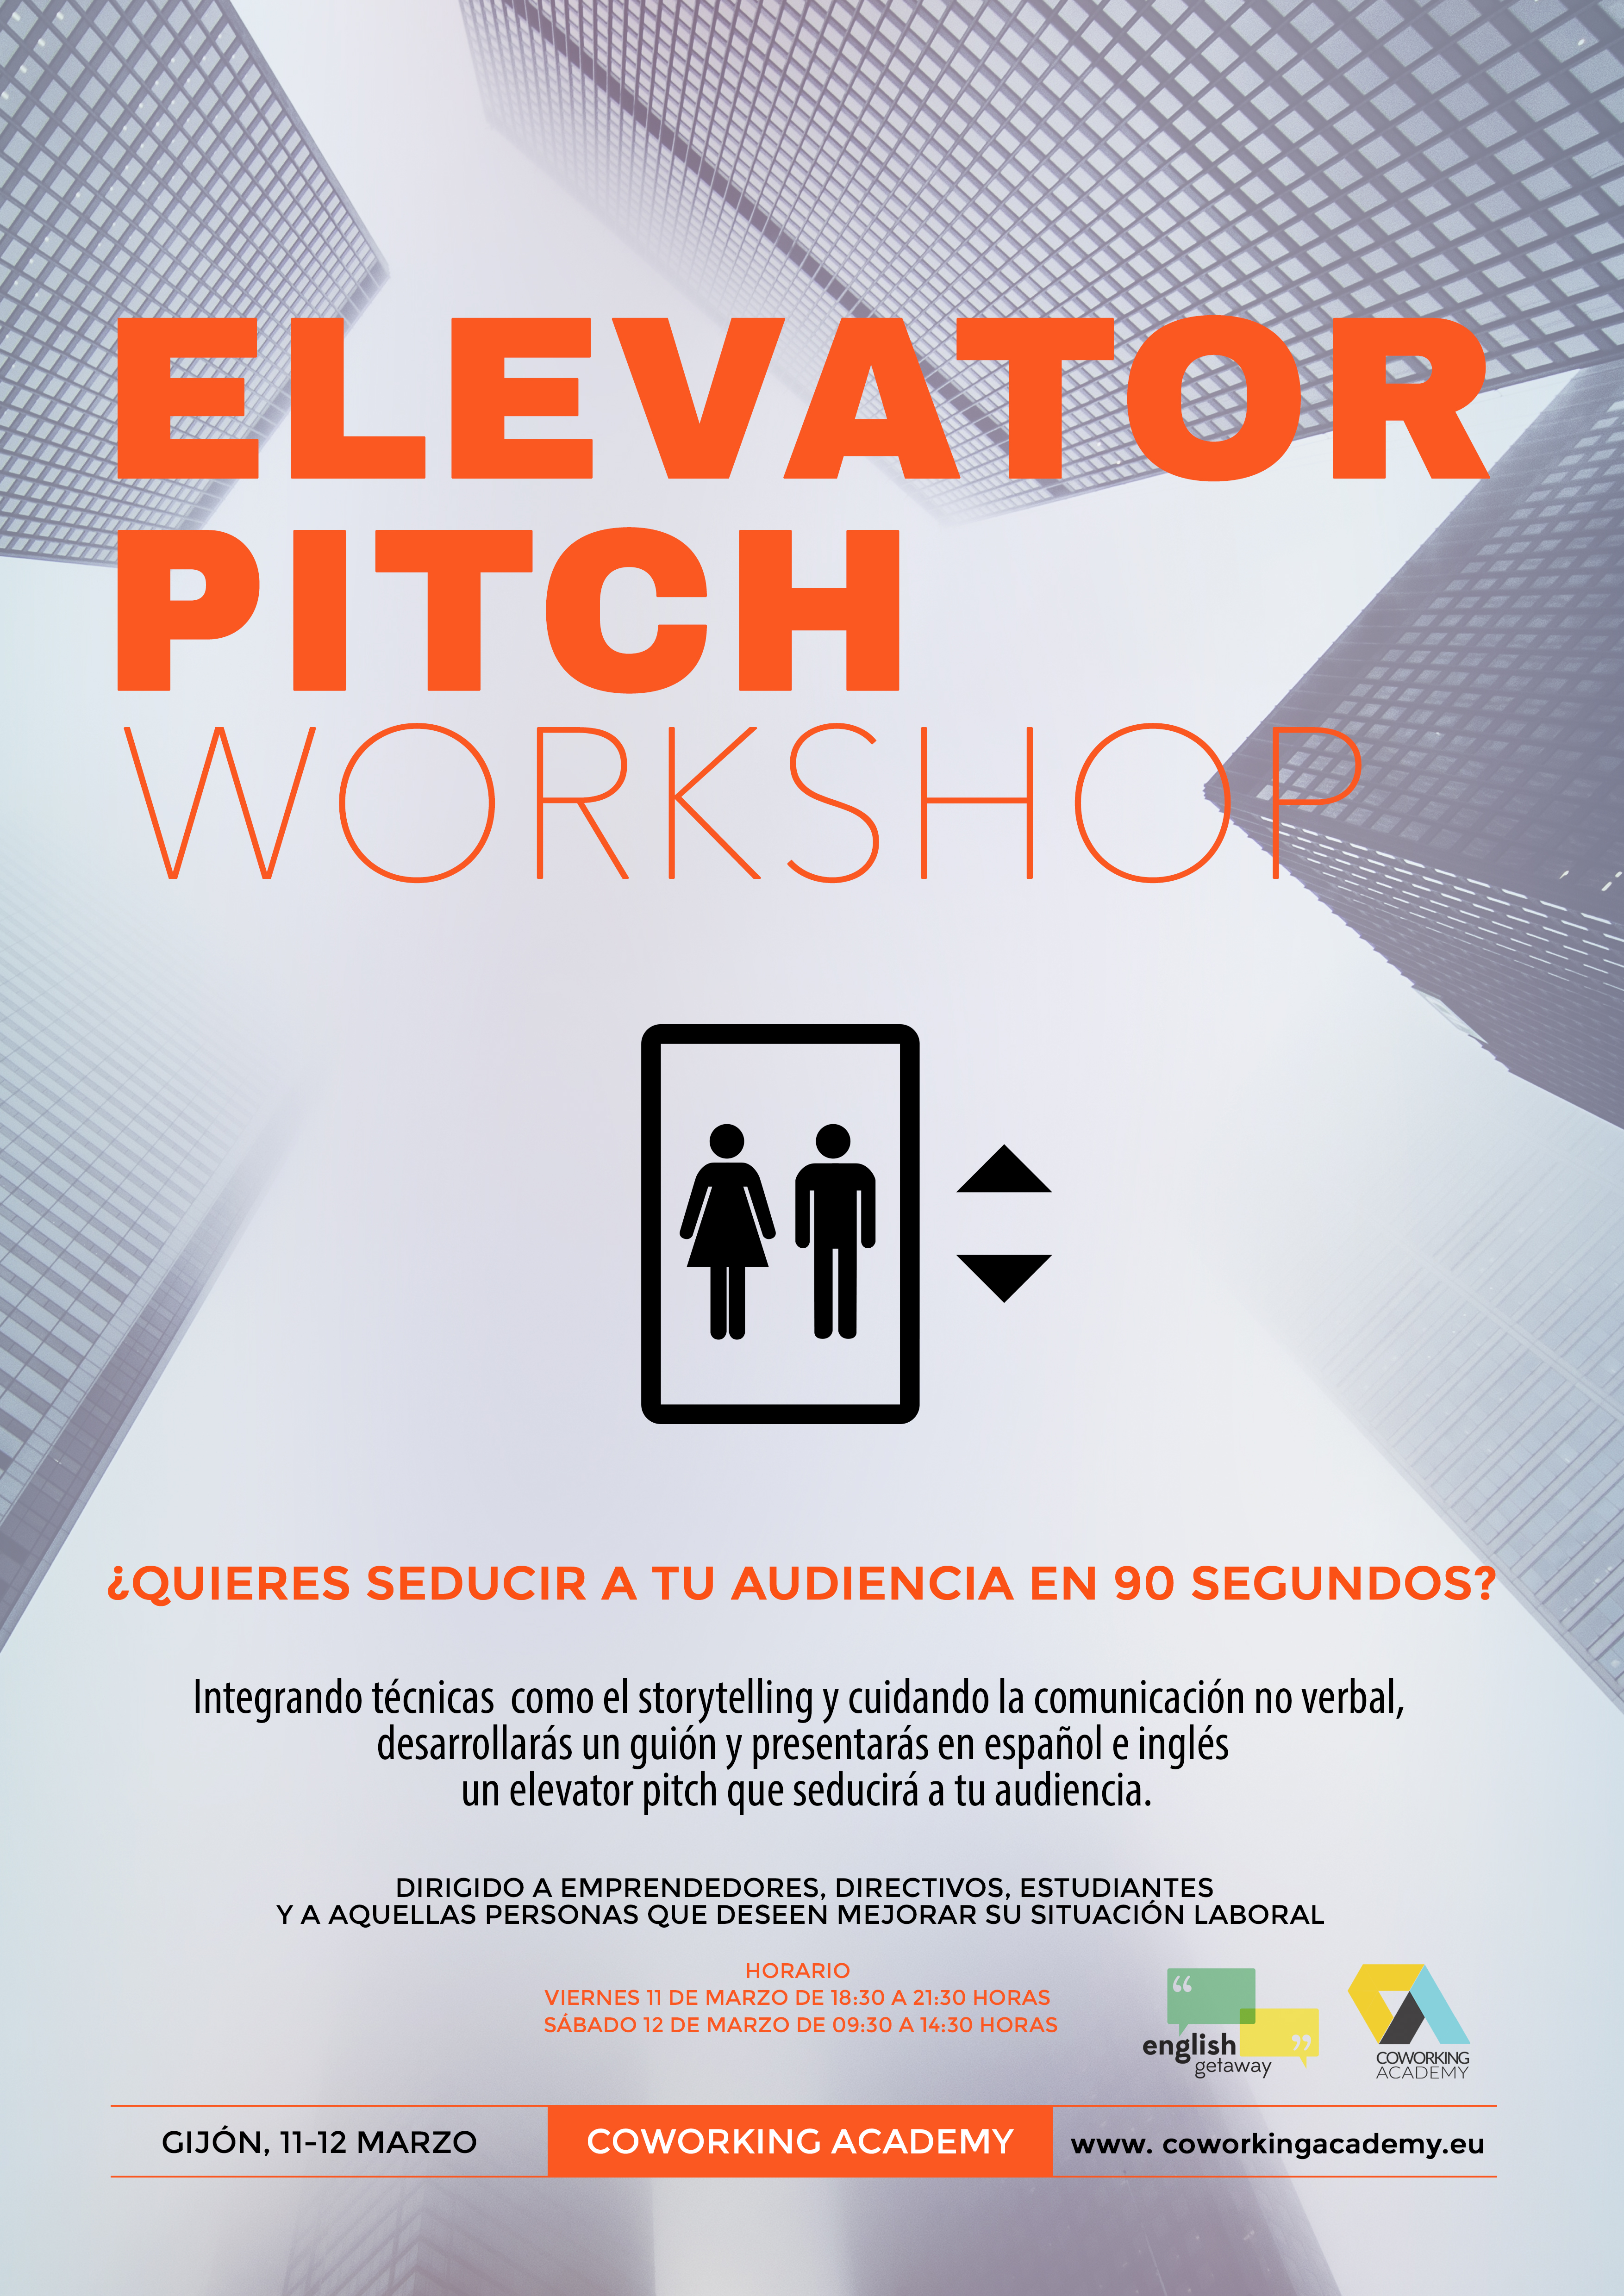 elevator_pitch-curso_ingles-coworking_academy